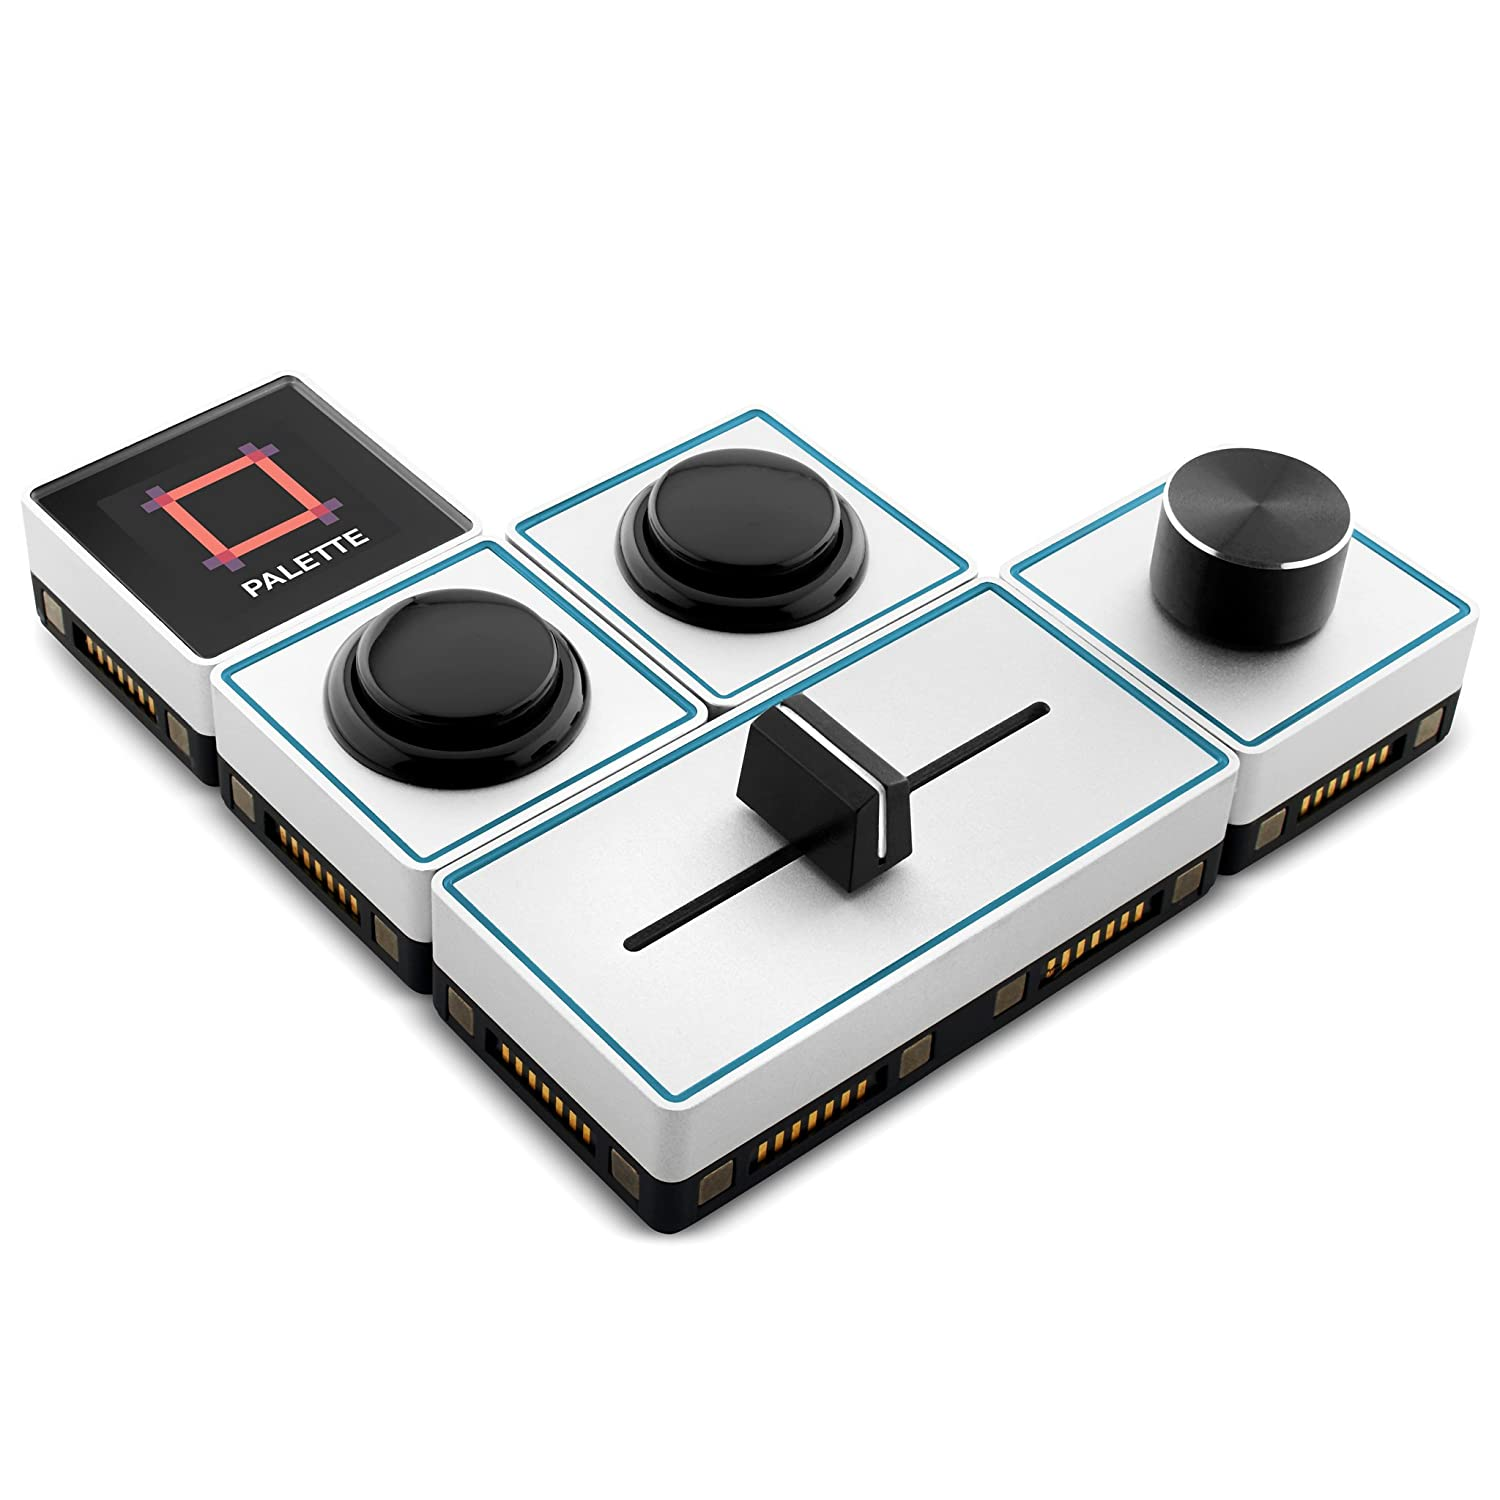 Palette Starter Kit Customizable Controller for Photo Editing and Video  Editing with Adobe Lightroom Classic CC, Adobe Lightroom 6, Adobe Photoshop